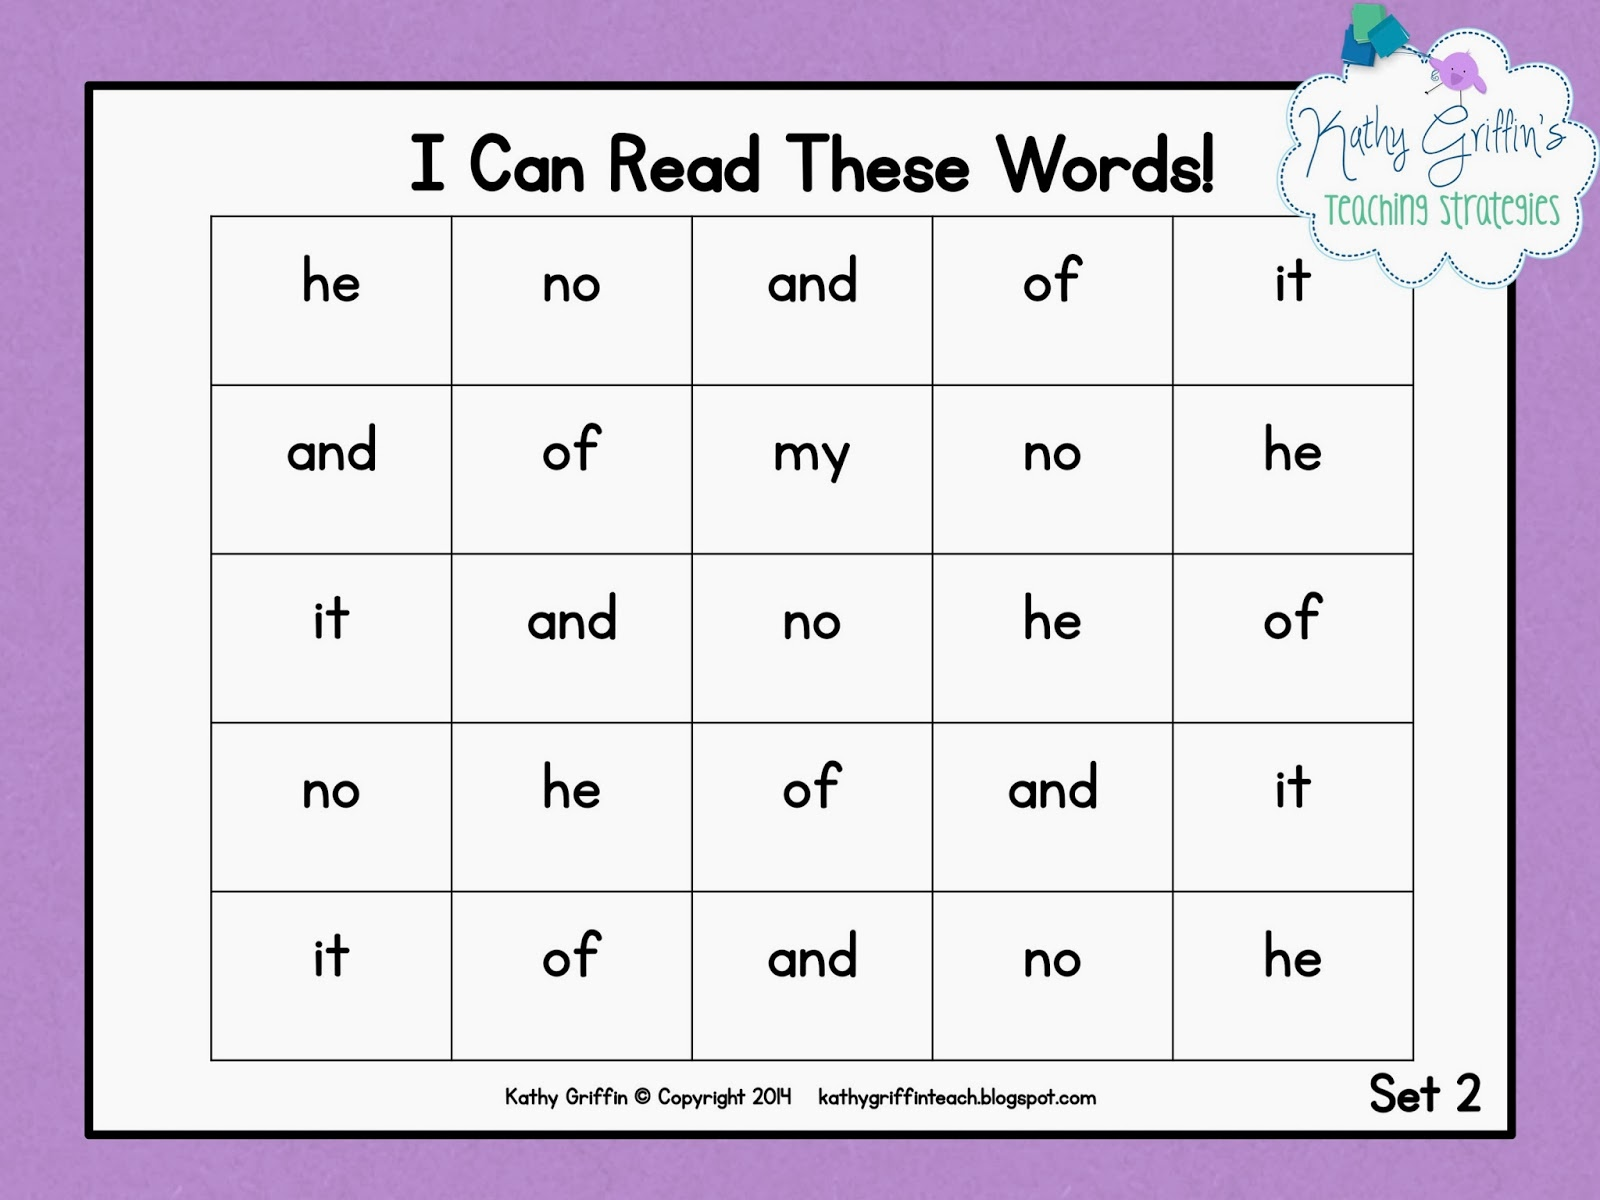 Kathy Griffin S Teaching Strategies Groovy Sight Word